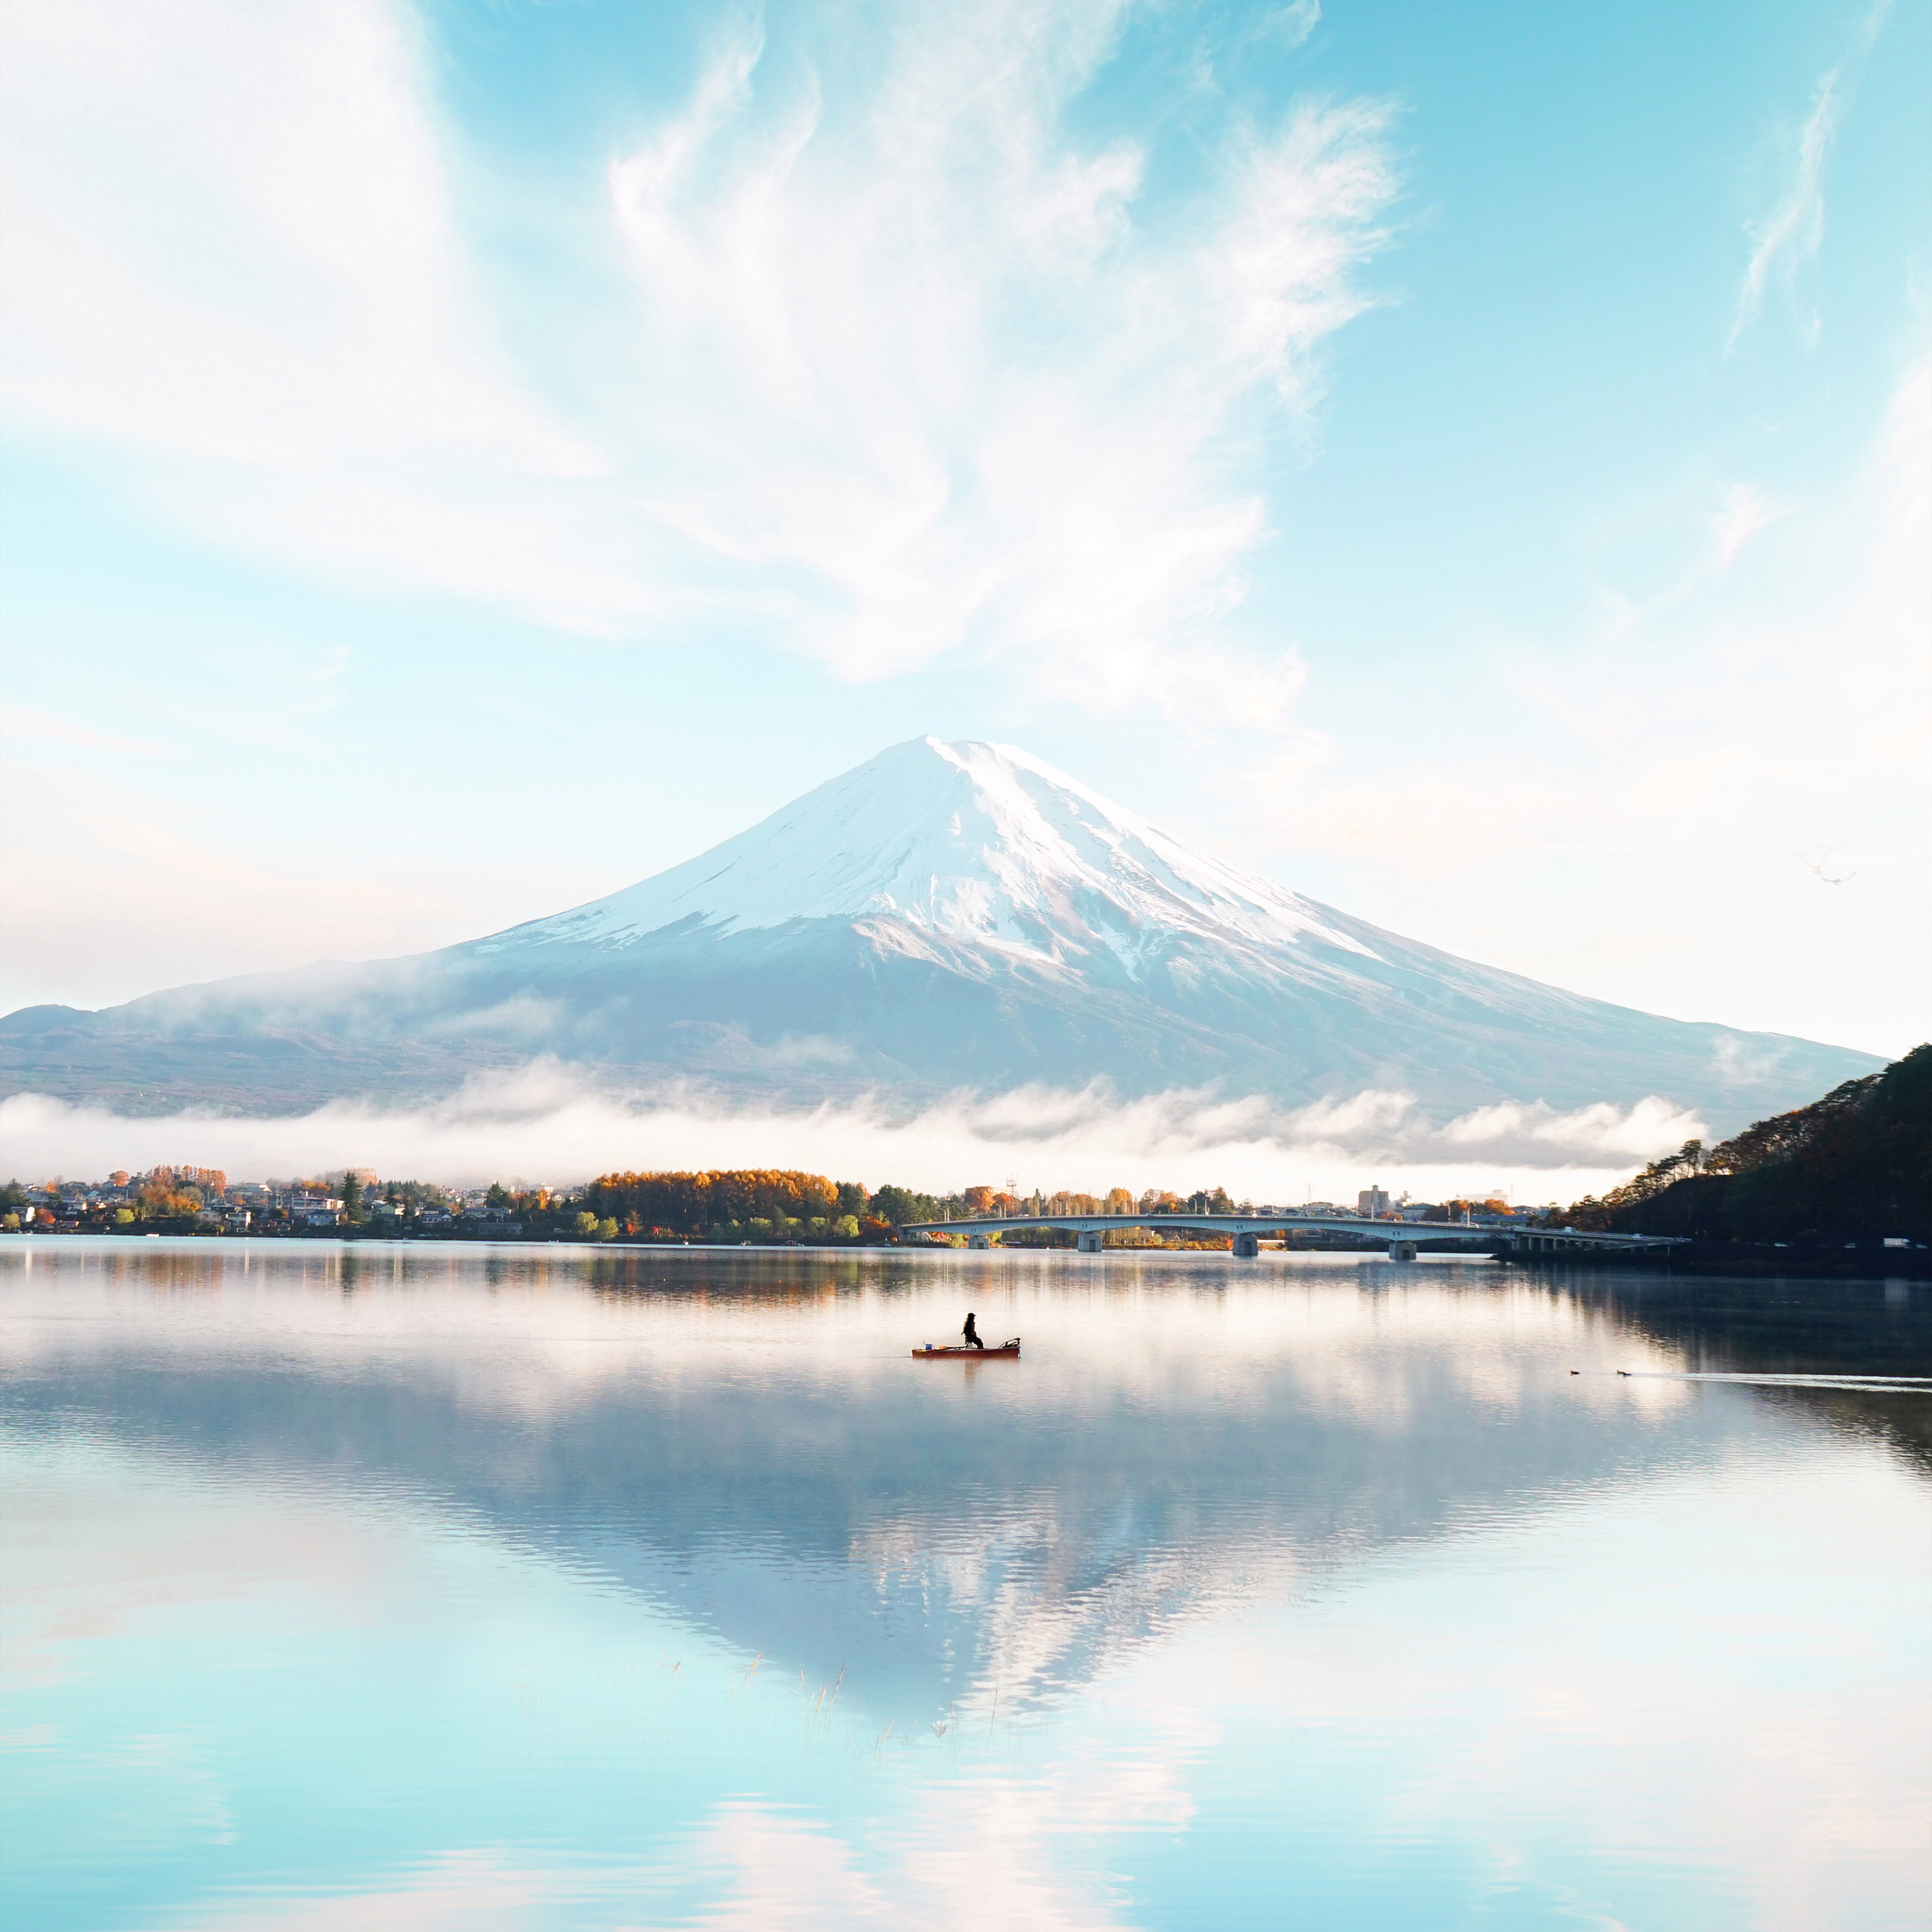 Mount Fuji Blue Bright Day 4k Hd Nature 4k Wallpapers Images Backgrounds Photos And Pictures